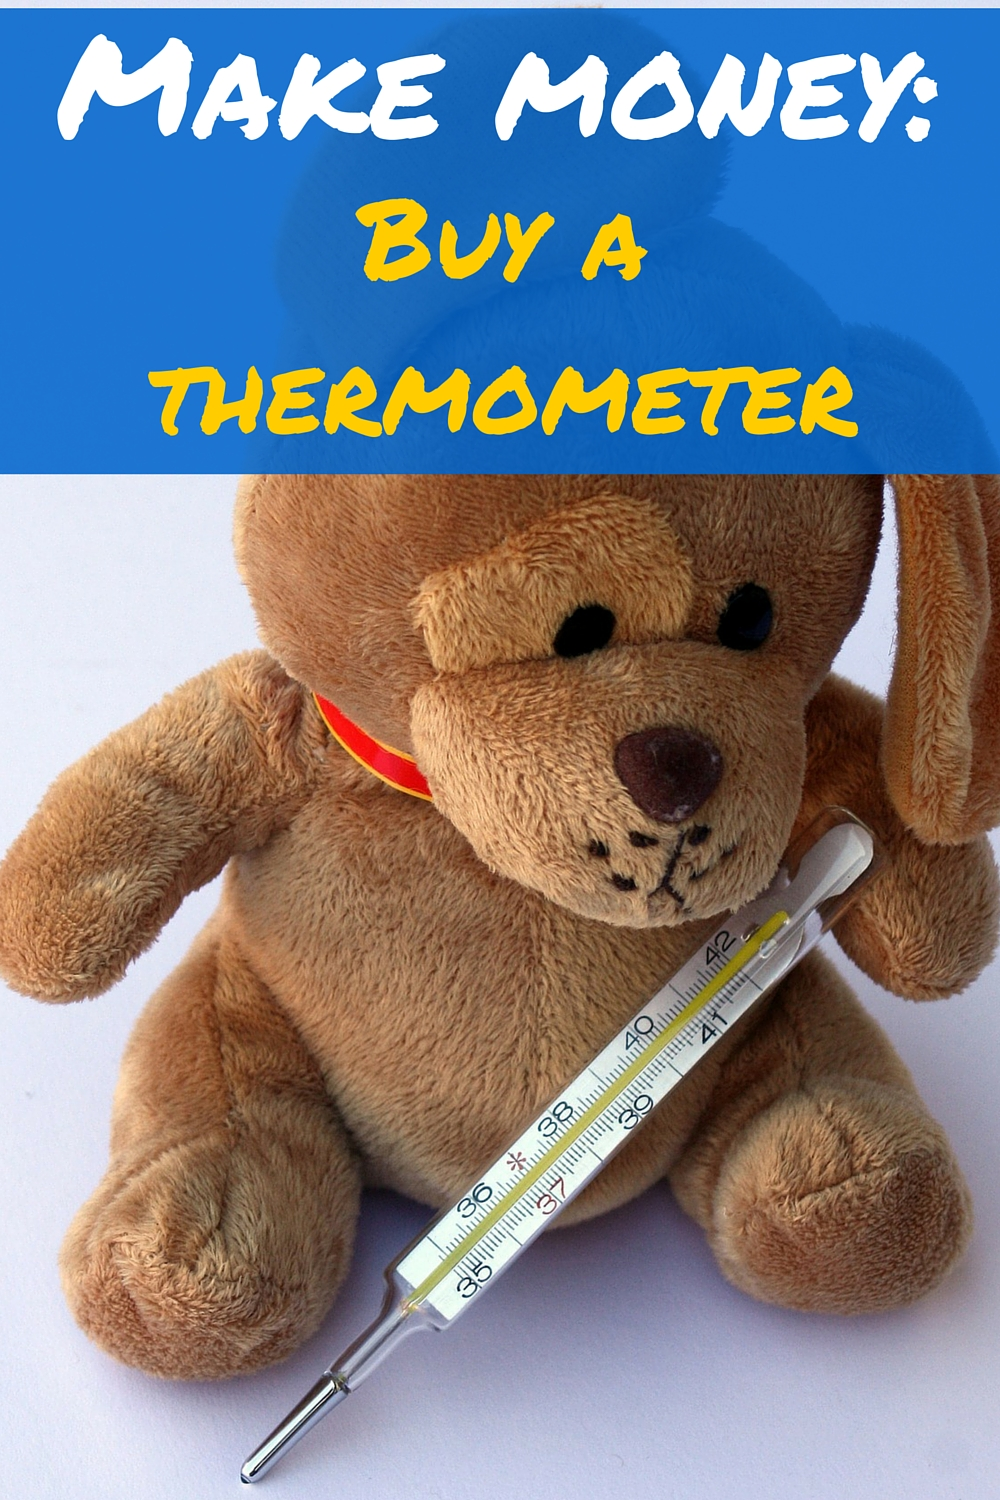 This is awesome! Make money AND get a free smart thermometer!